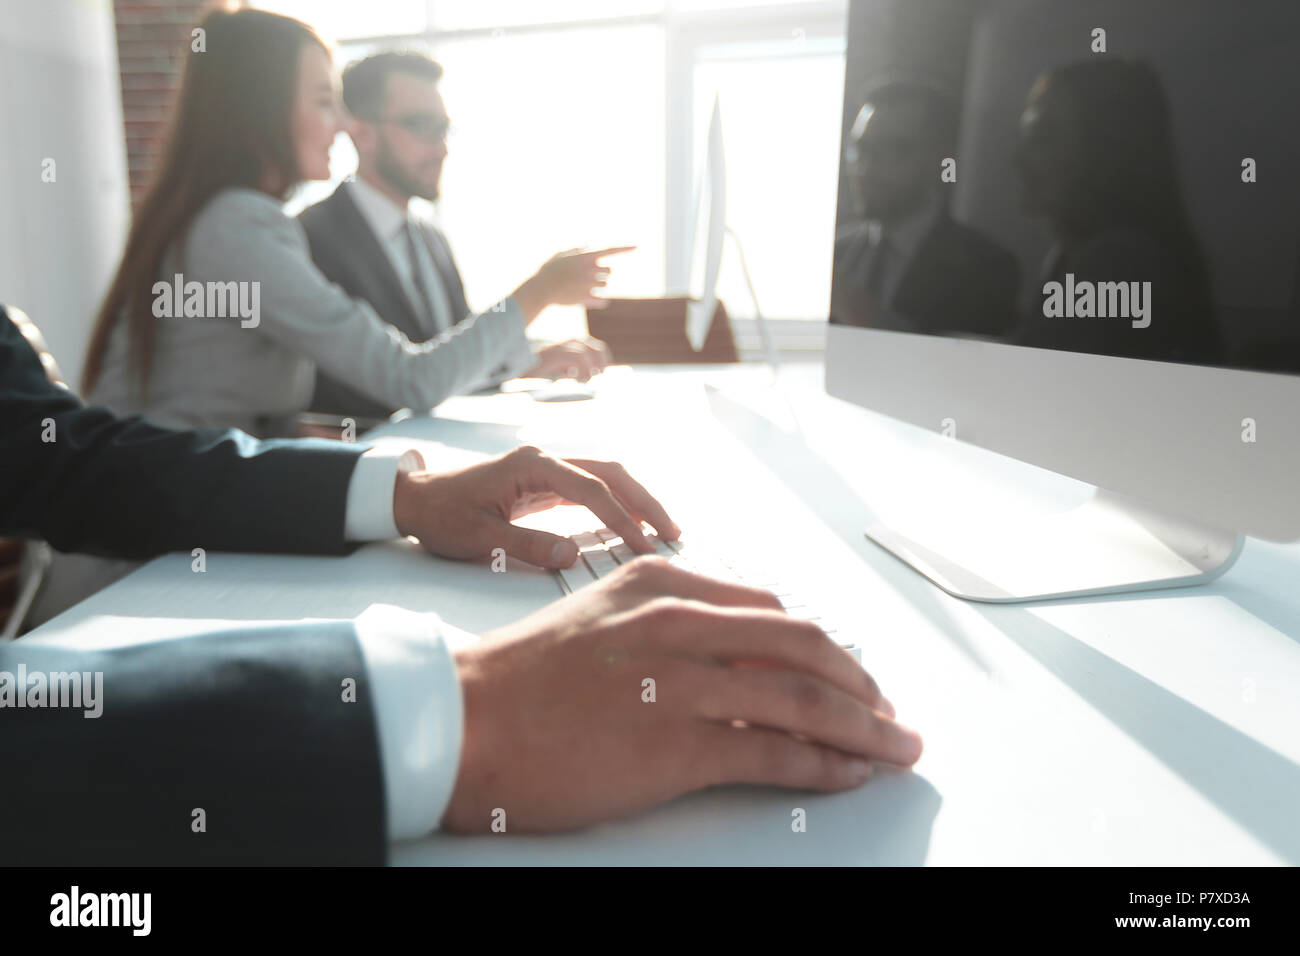 background image of a business meeting . - Stock Image